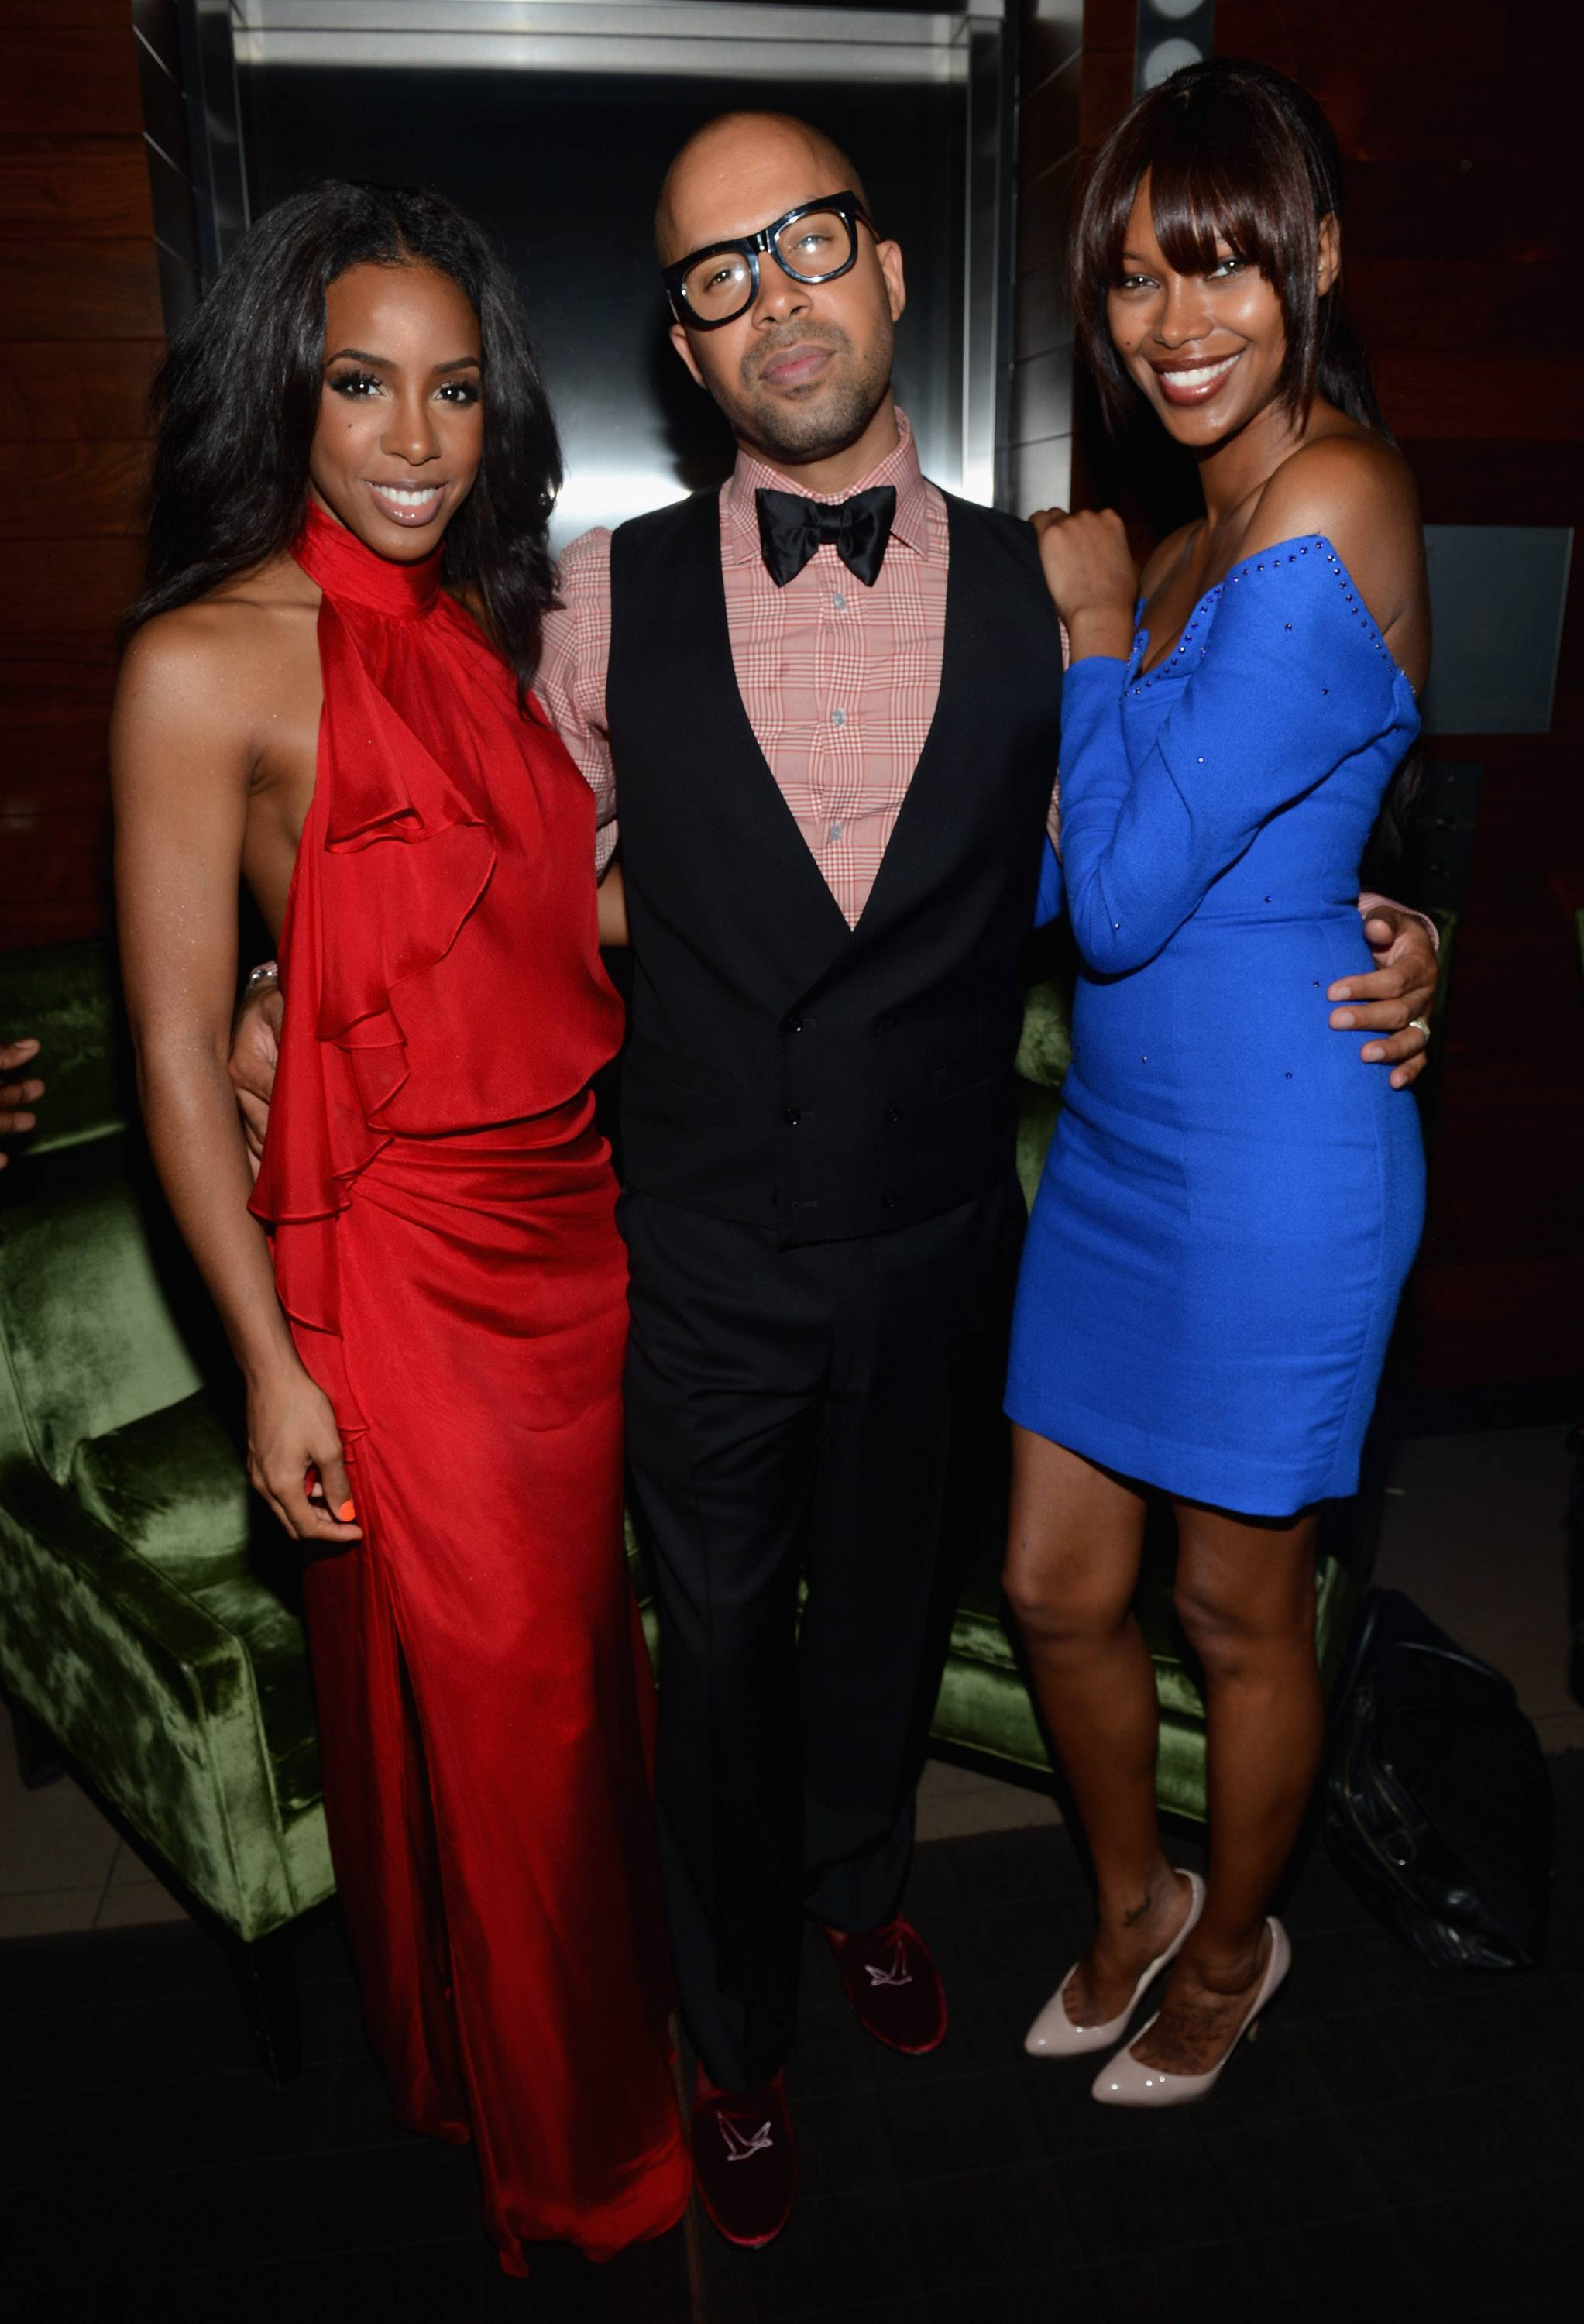 Kelly Rowland, Kenny Burns and model Jessica White